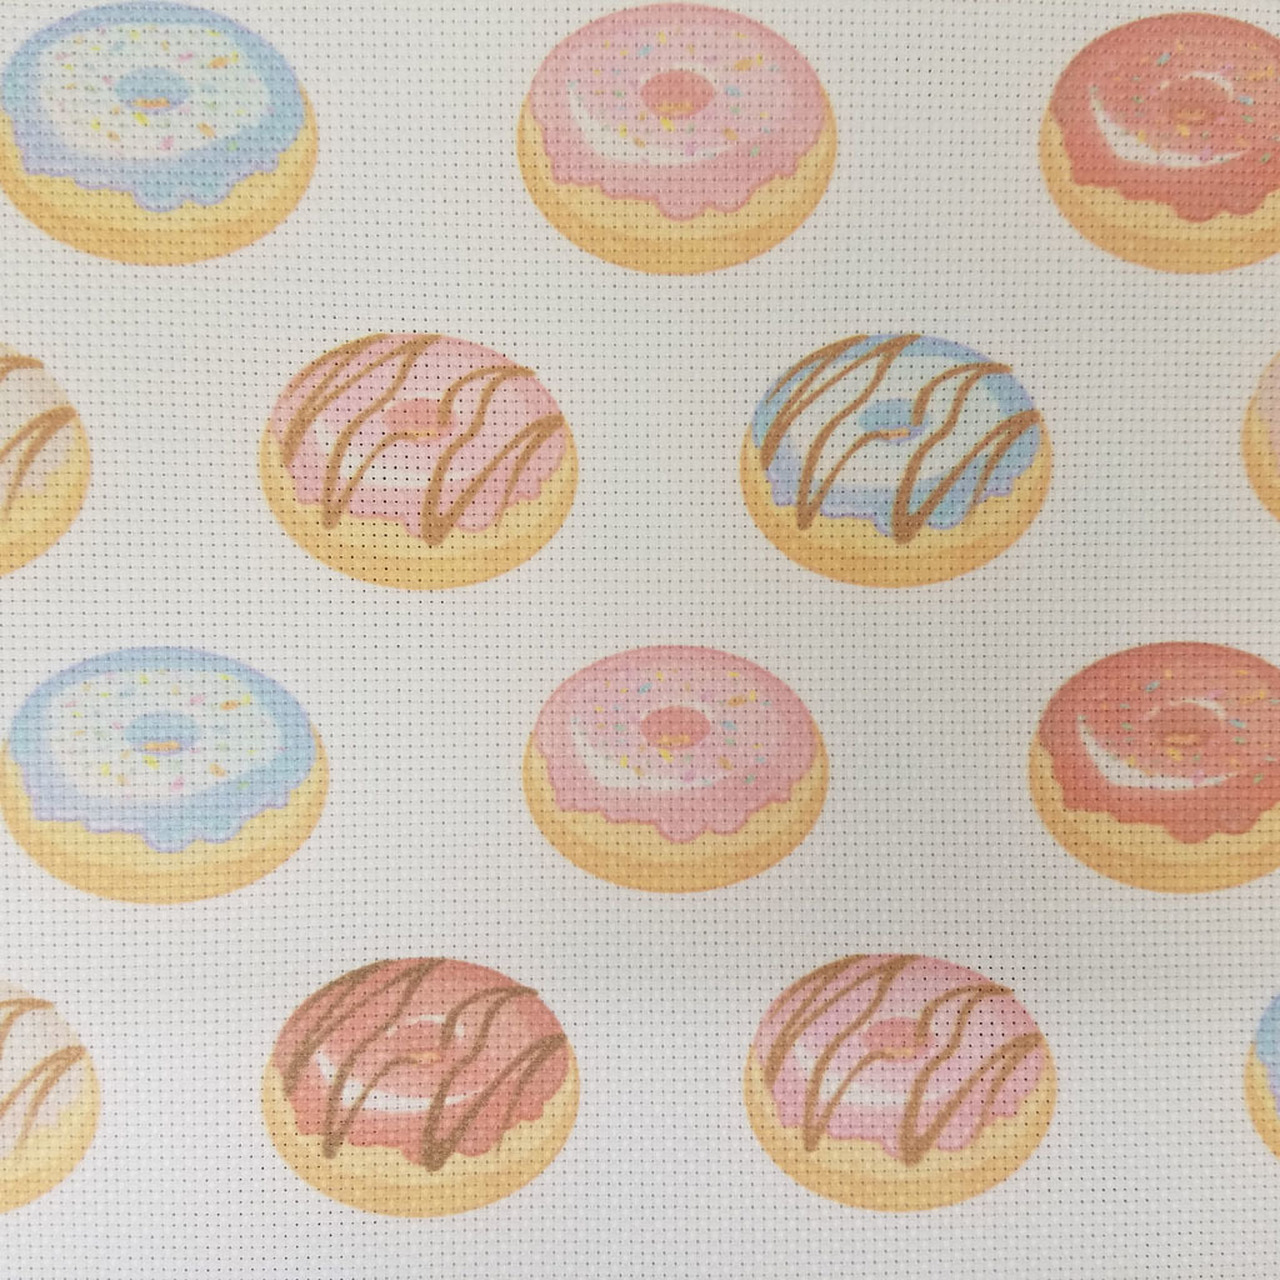 Donut Time Patterned Cross Stitch Fabric